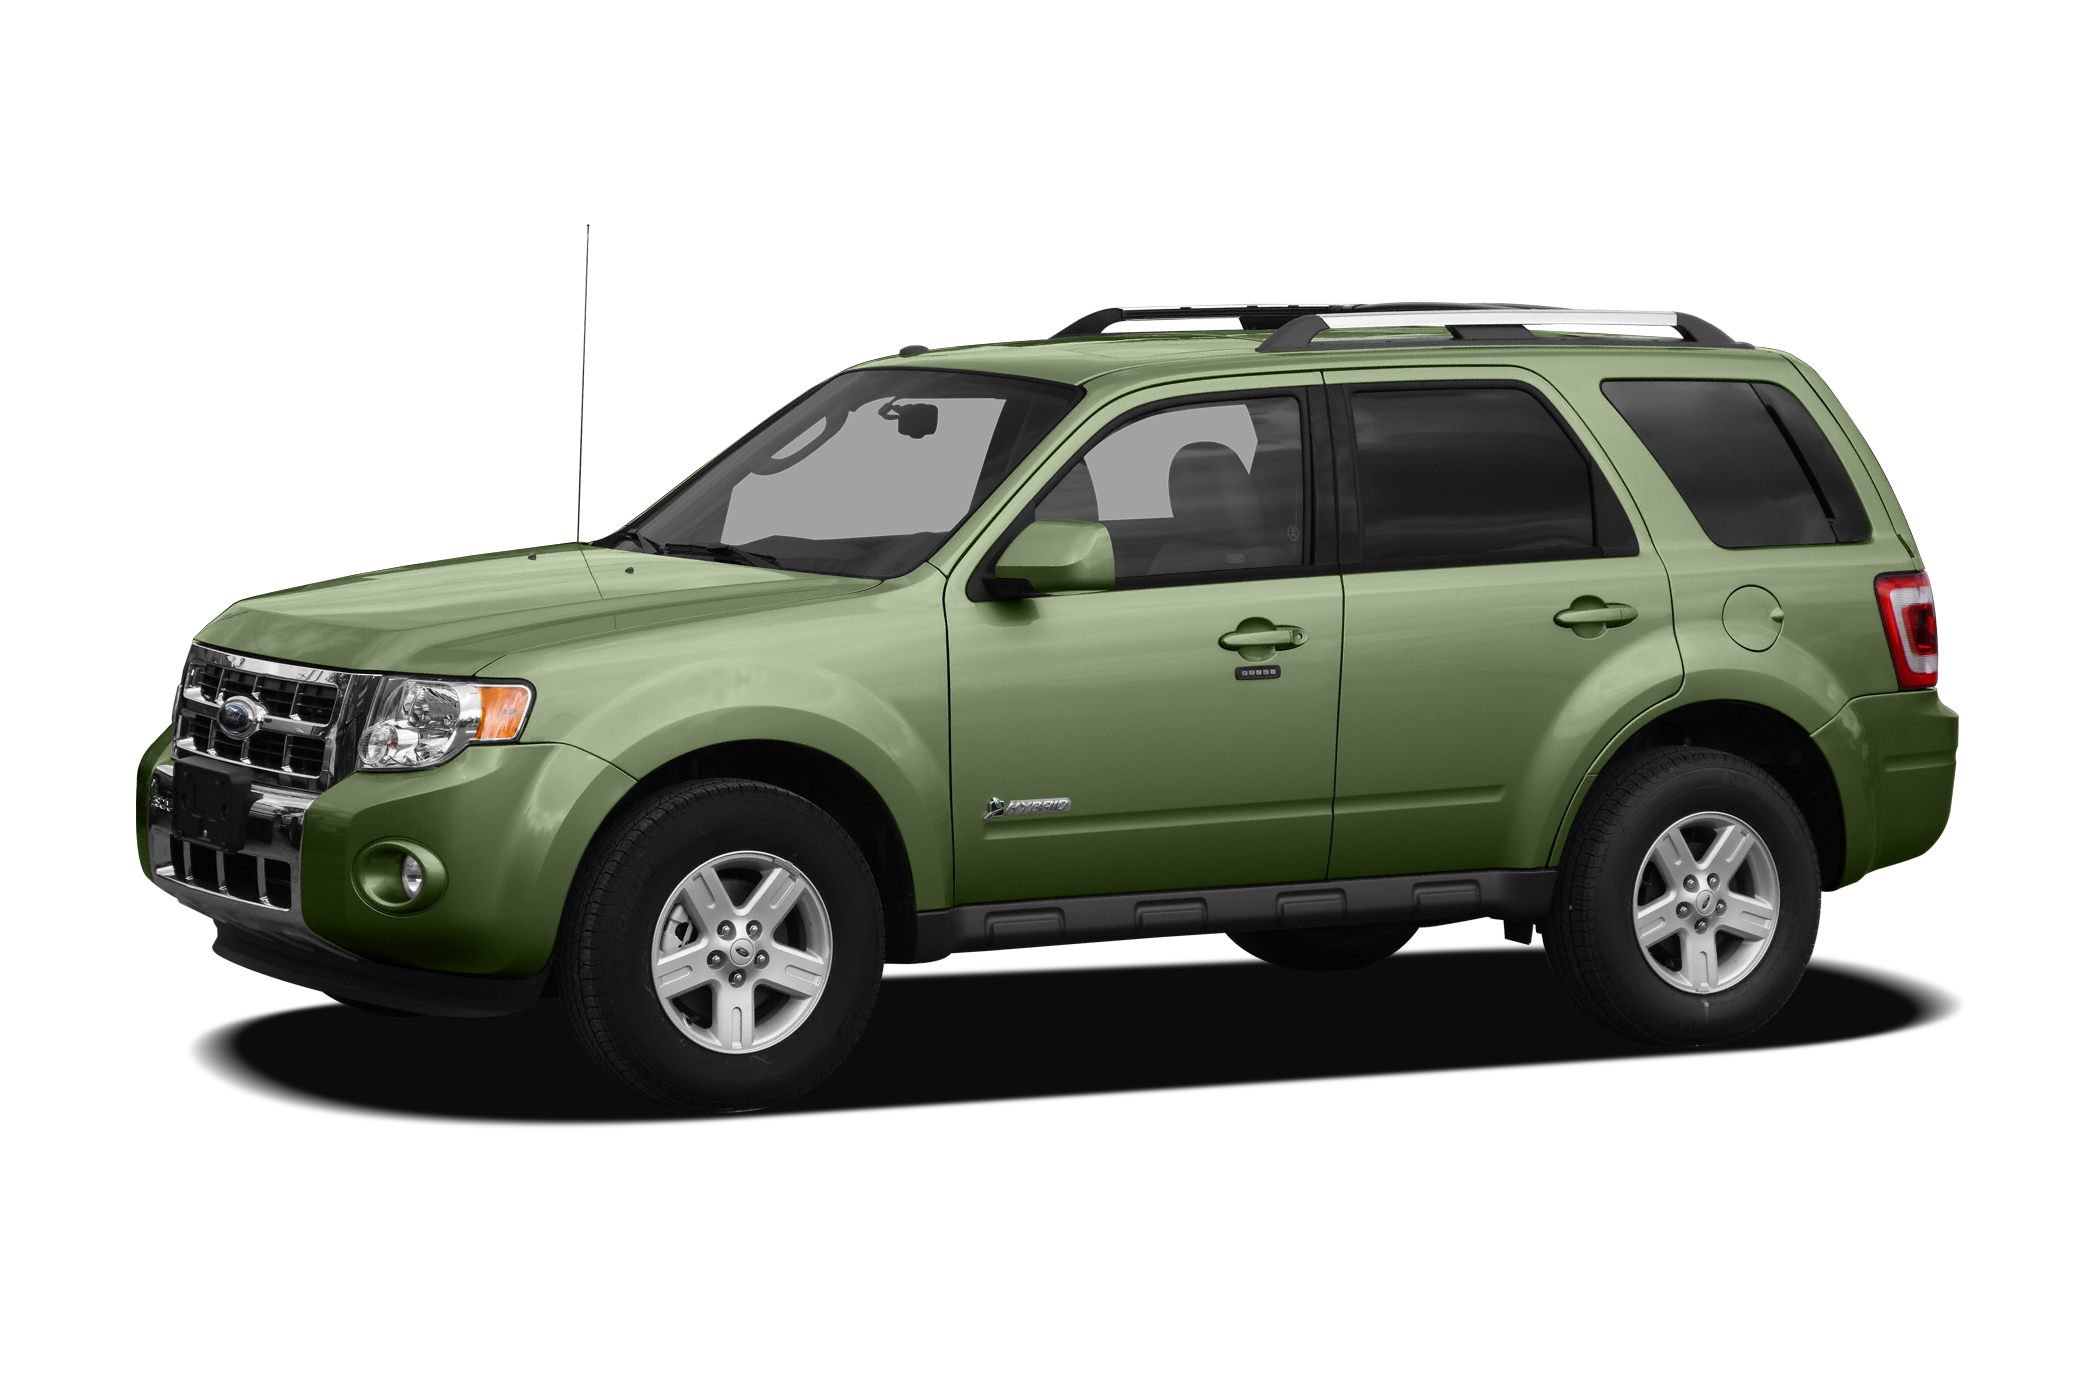 2008 Ford Escape Hybrid SUV for sale in Honolulu for $11,995 with 82,969 miles